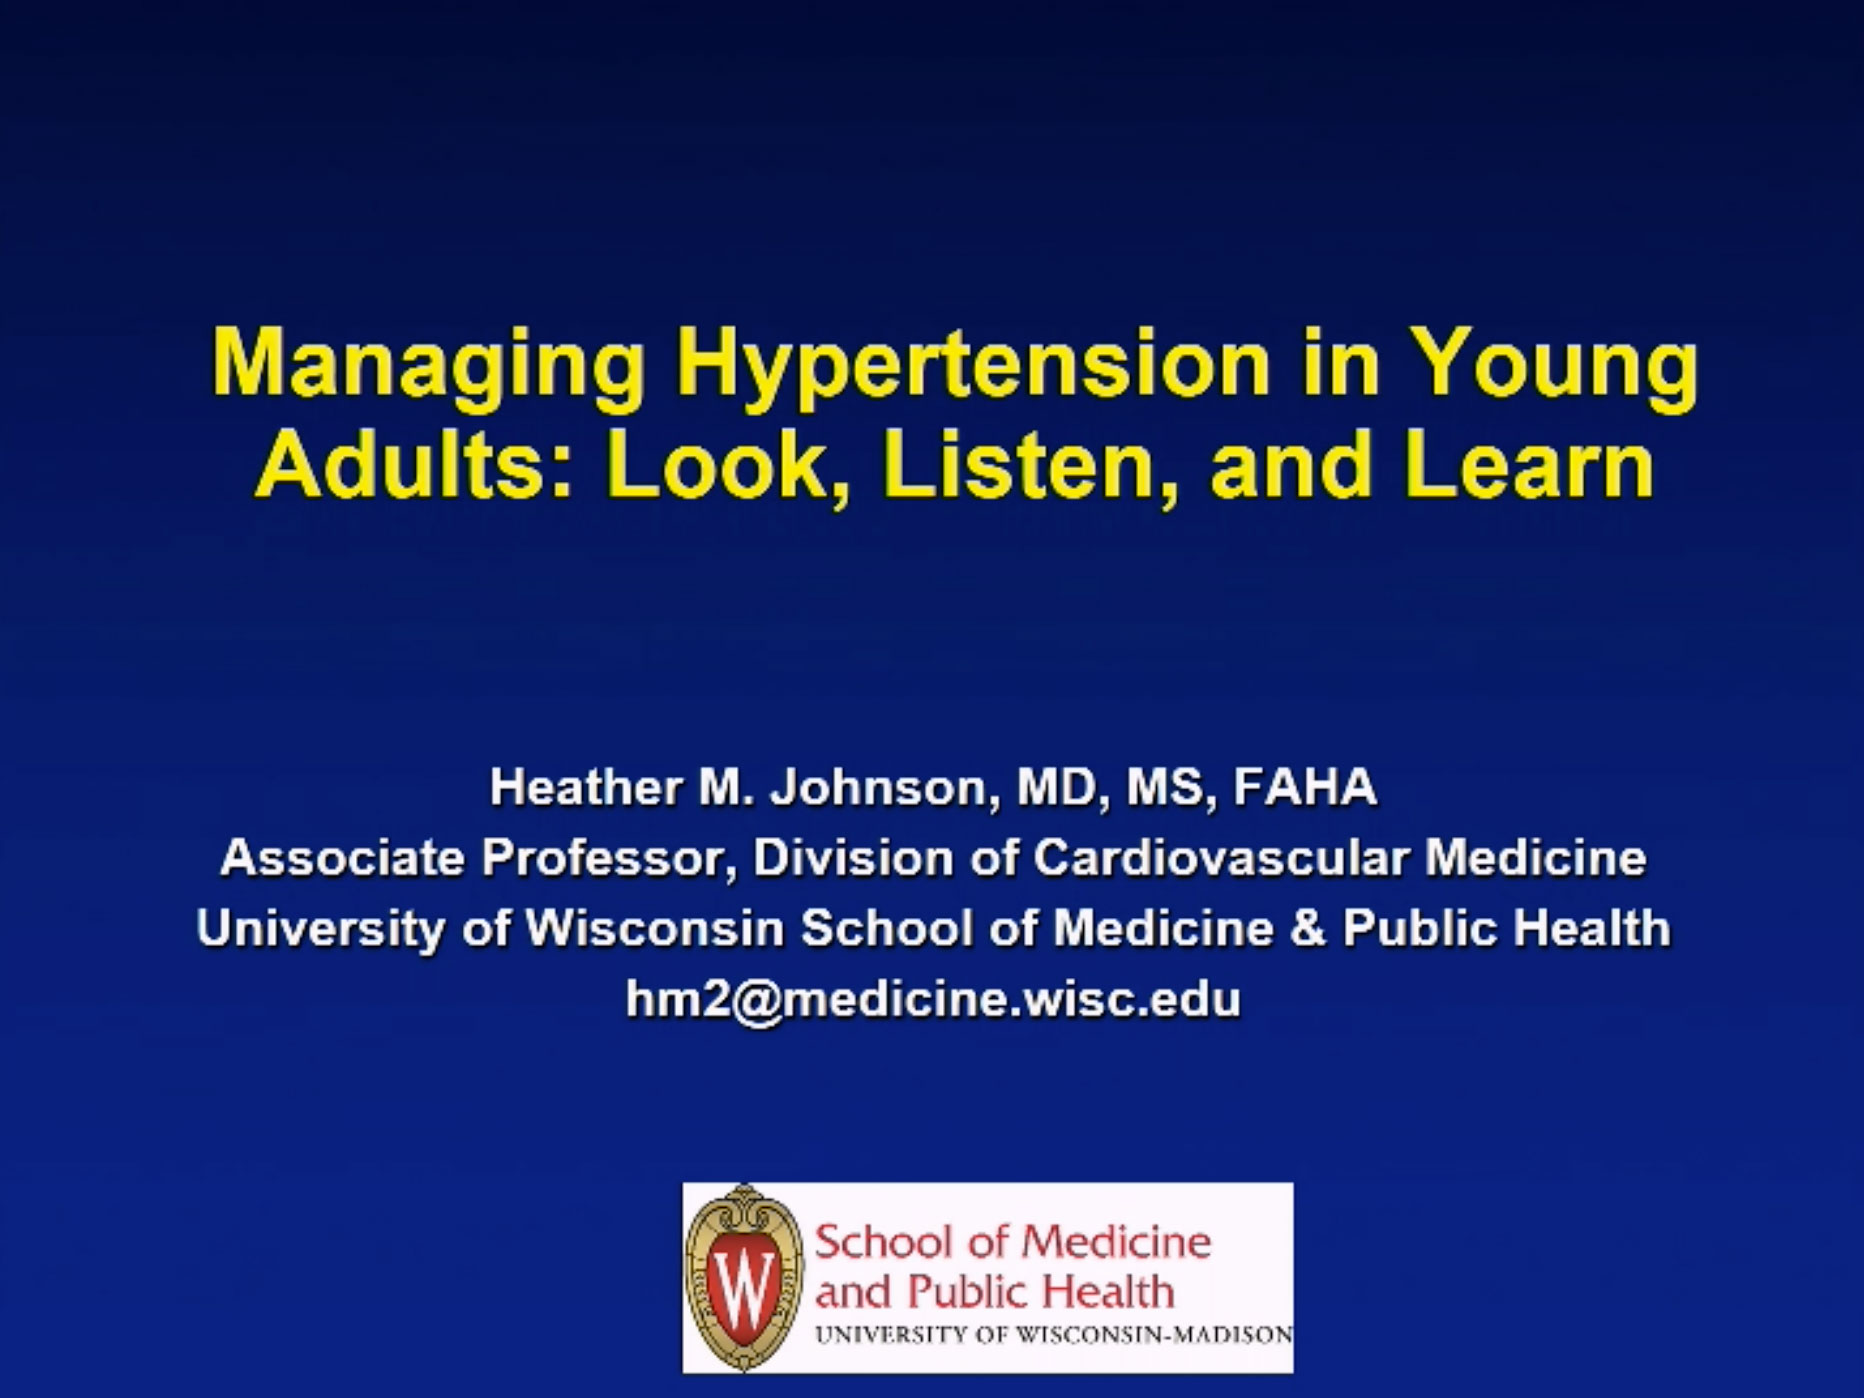 Picture from Managing Hypertension in Young Adults: Look, Listen and Learn video